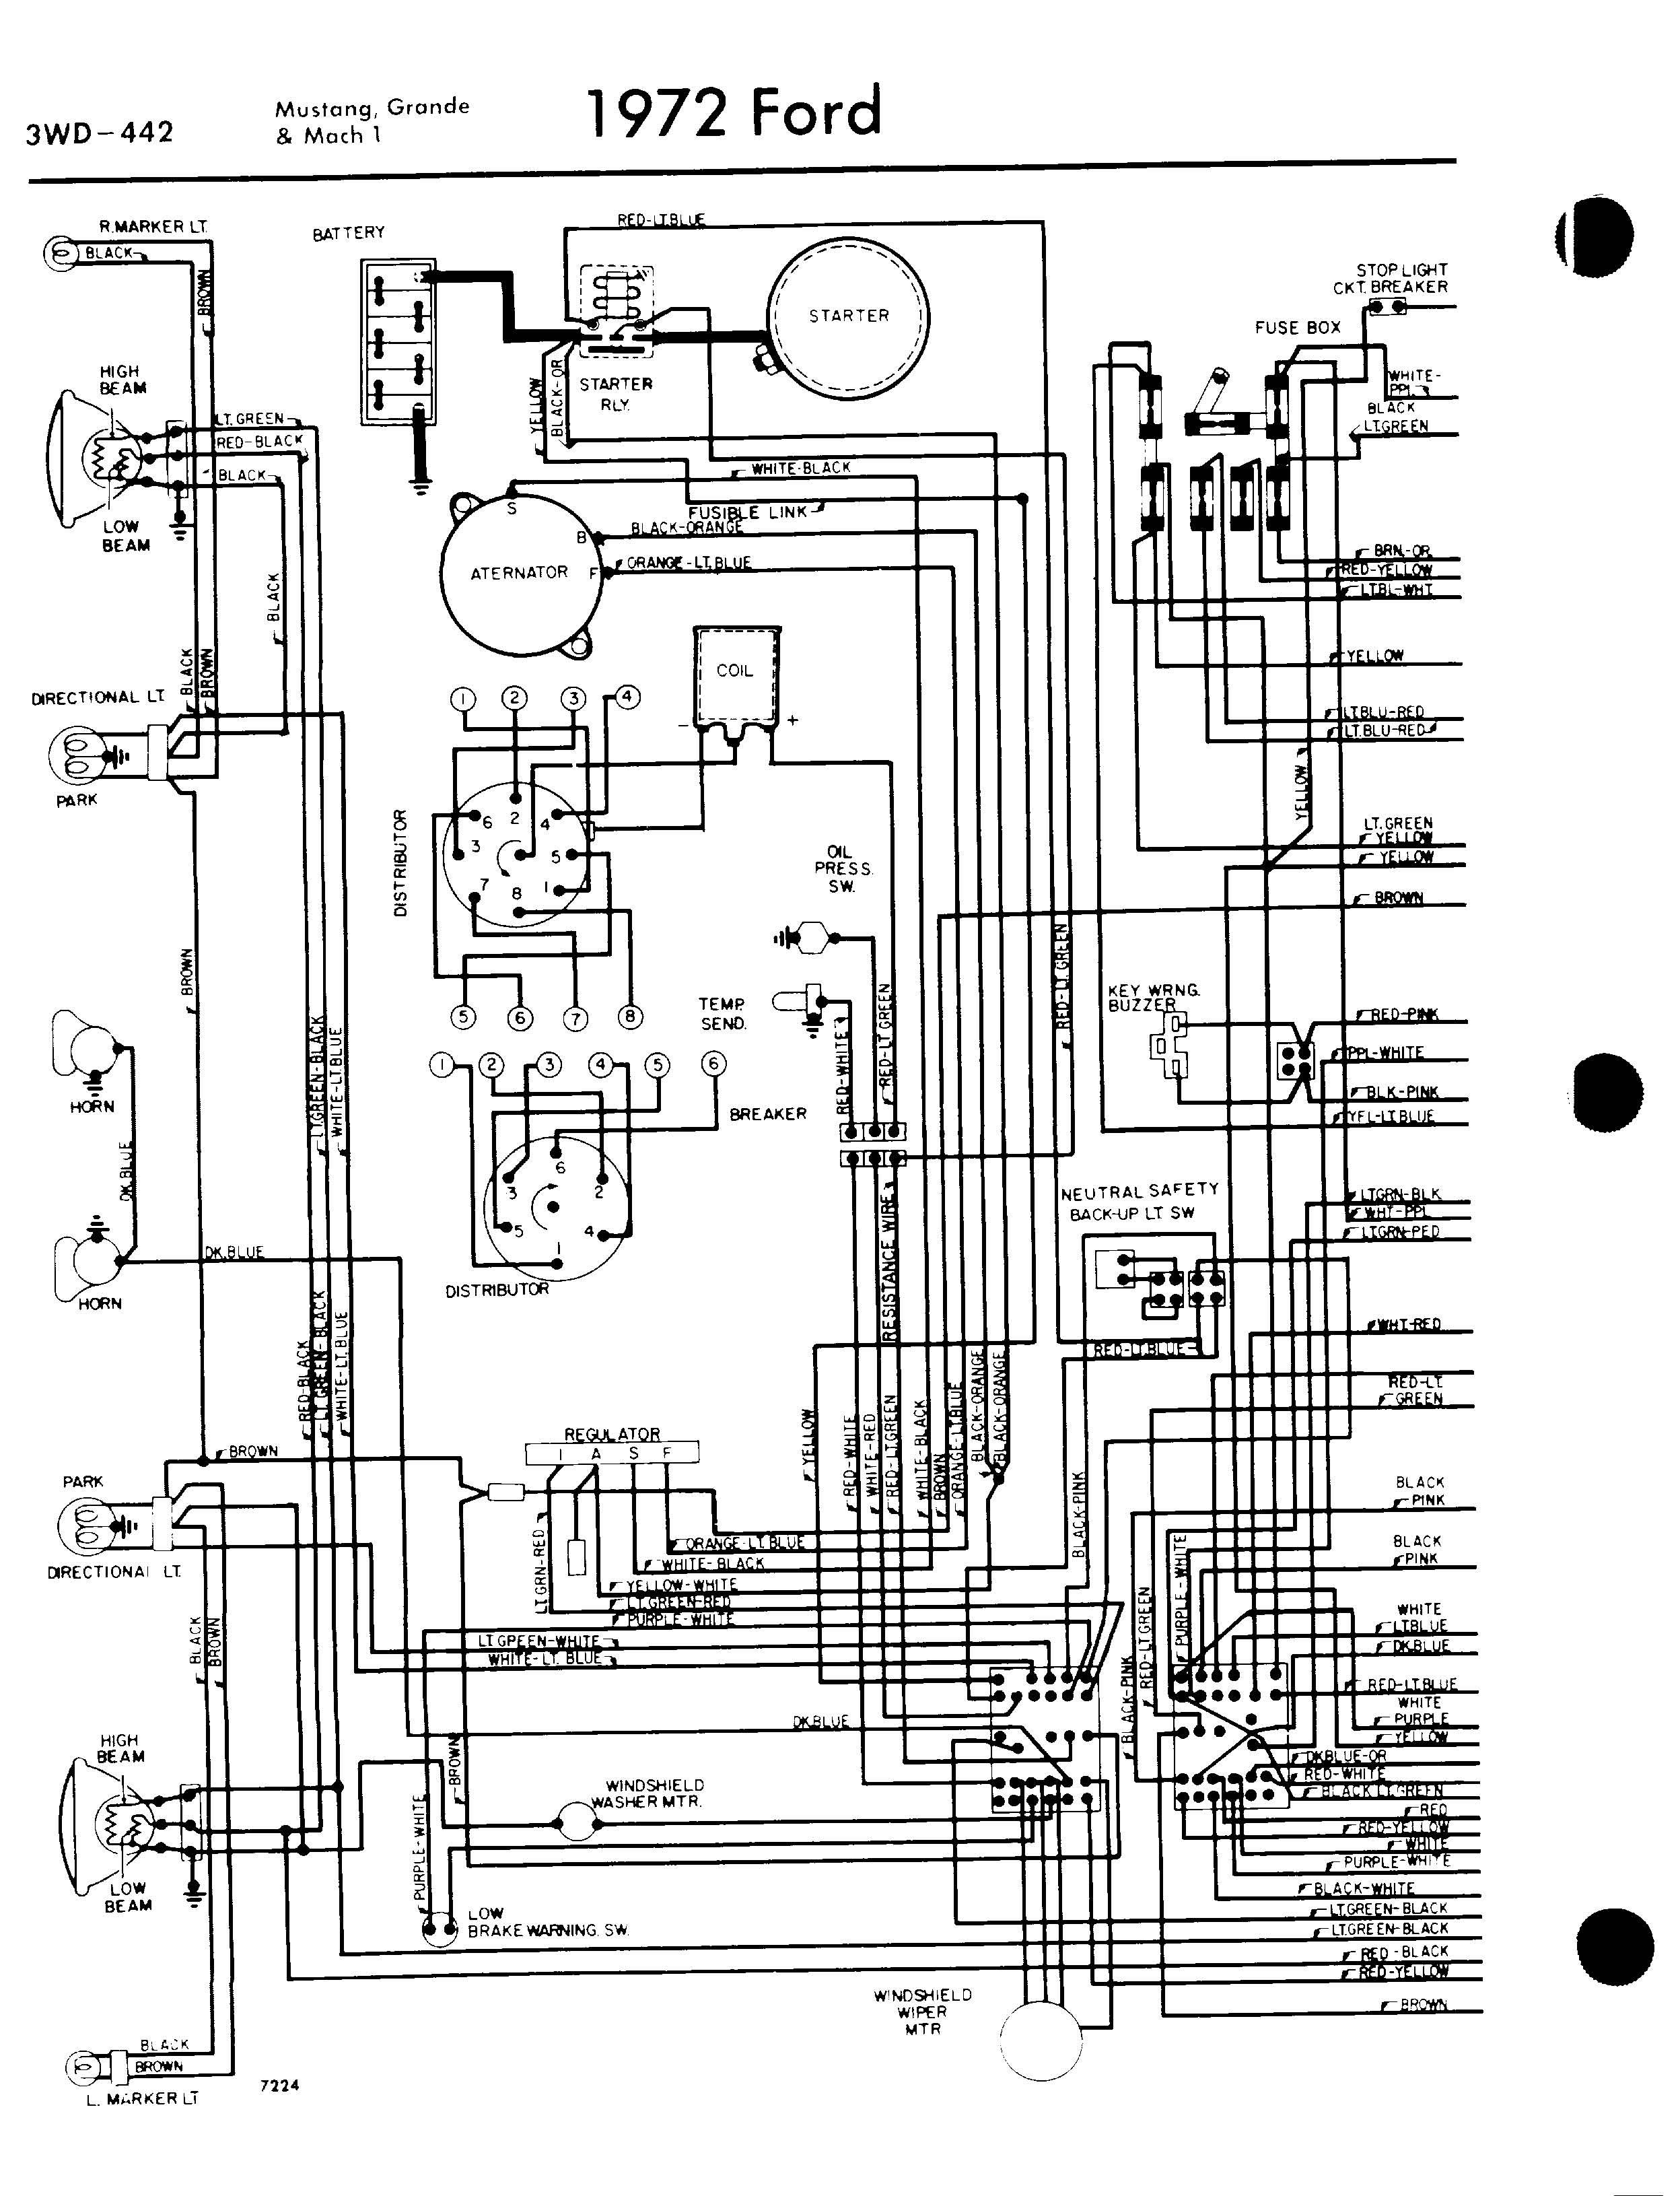 medium resolution of 1972 ford mustang engine wiring diagram wiring diagrams scematic 66 mustang alternator wiring diagram 1970 ford